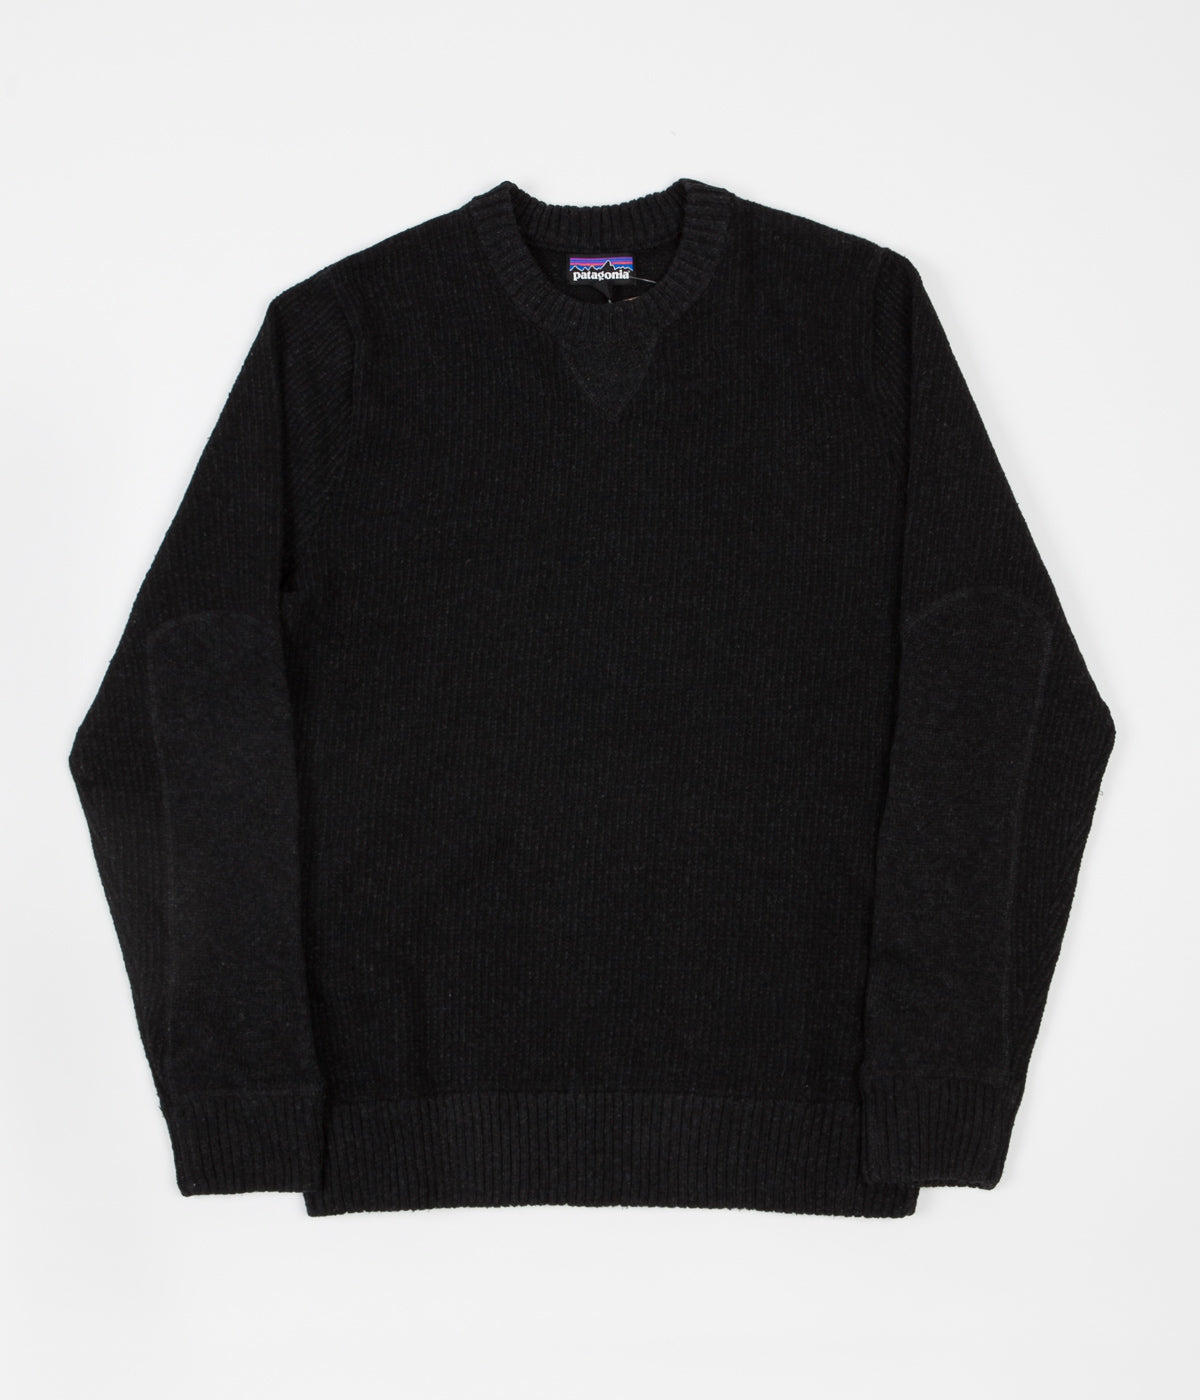 Patagonia Off Country Crewneck Sweatshirt - Forge Grey